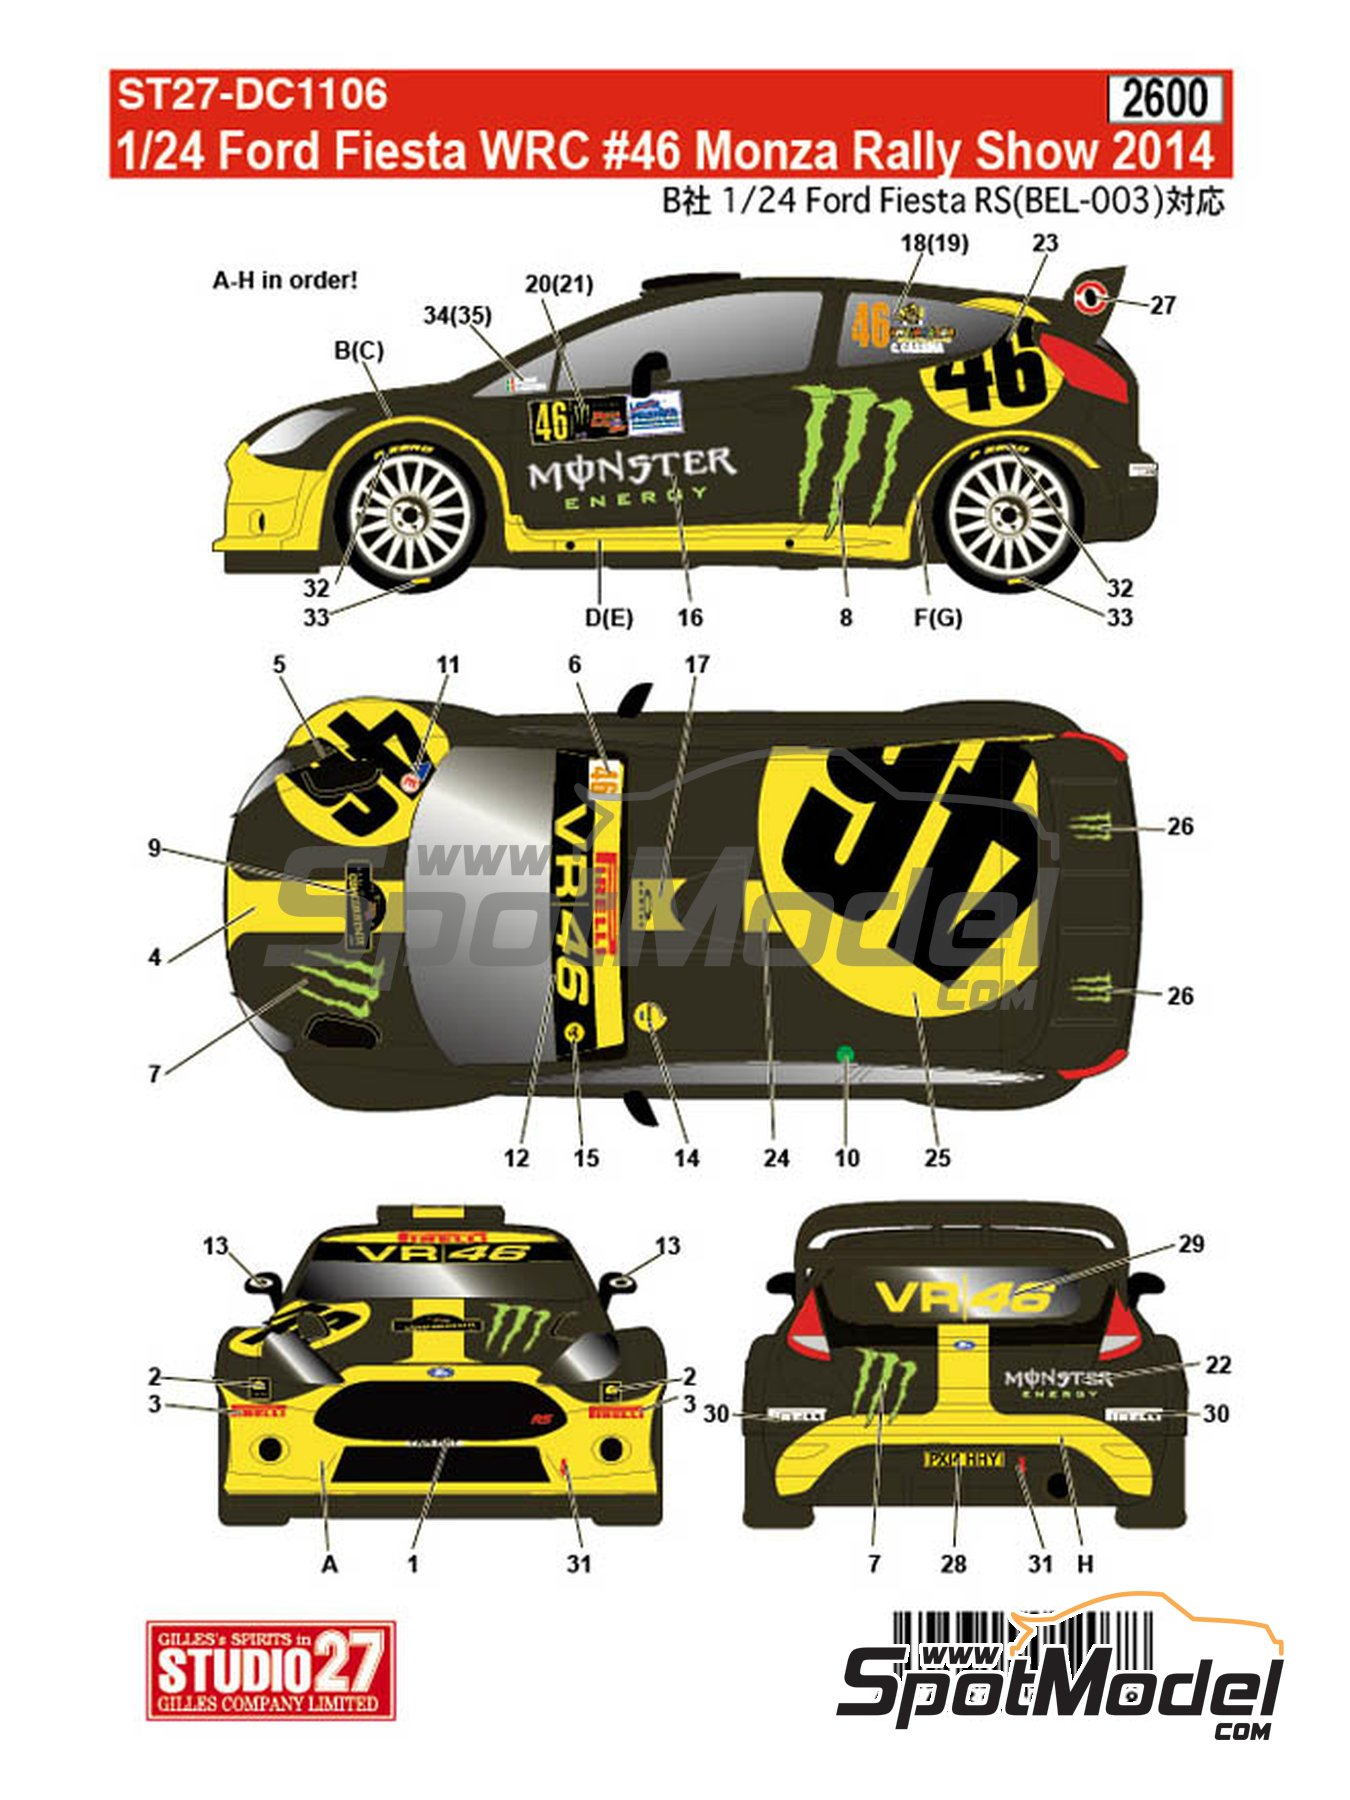 Ford Fiesta WRC Monster Energy - Monza Rally Show 2014 | Marking / livery in 1/24 scale manufactured by Studio27 (ref.ST27-DC1106) image